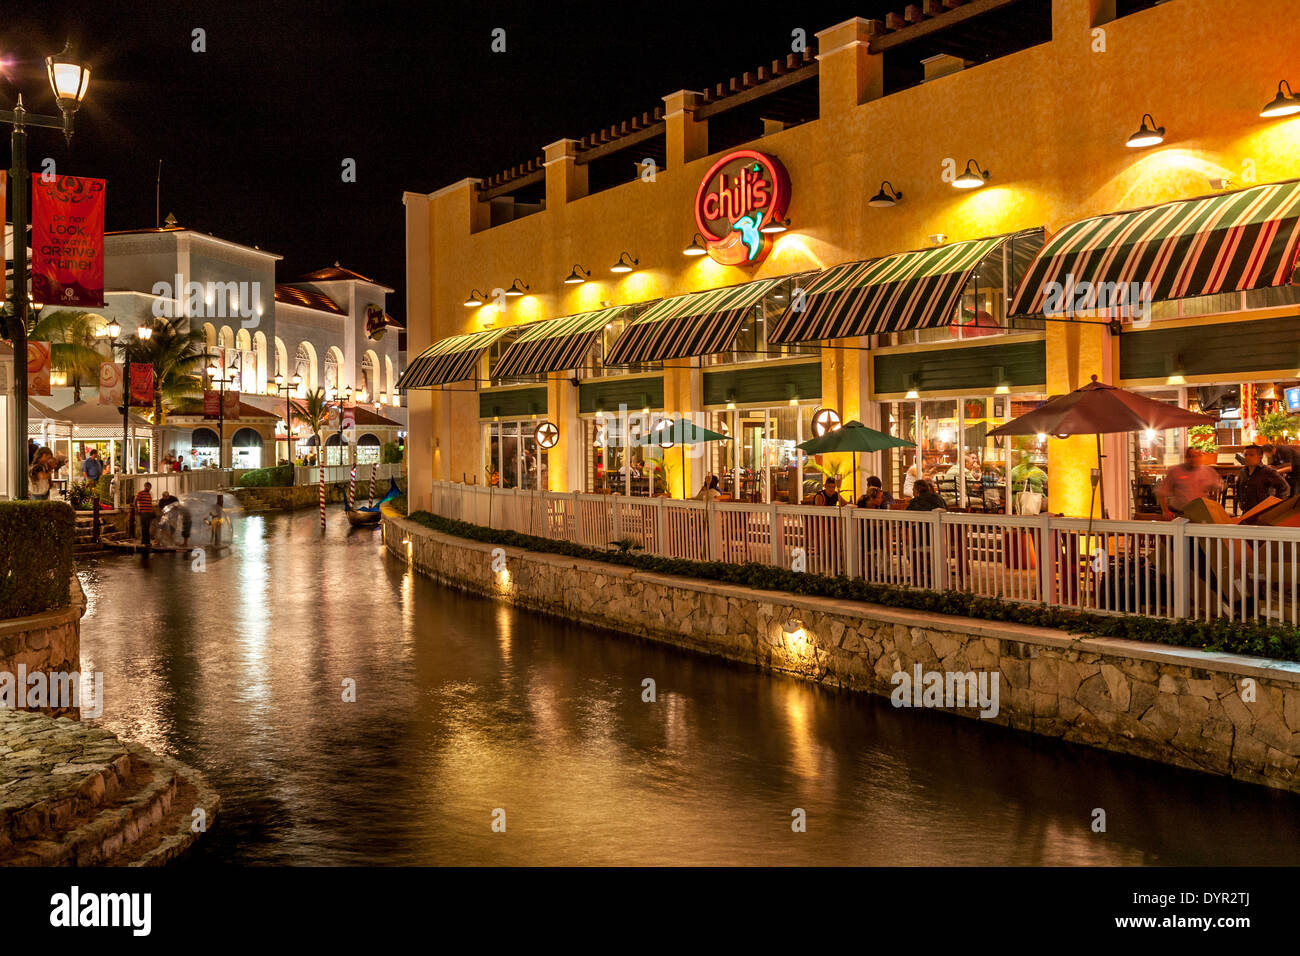 Chilis Restaurant Stock Photos & Chilis Restaurant Stock Images - Alamy